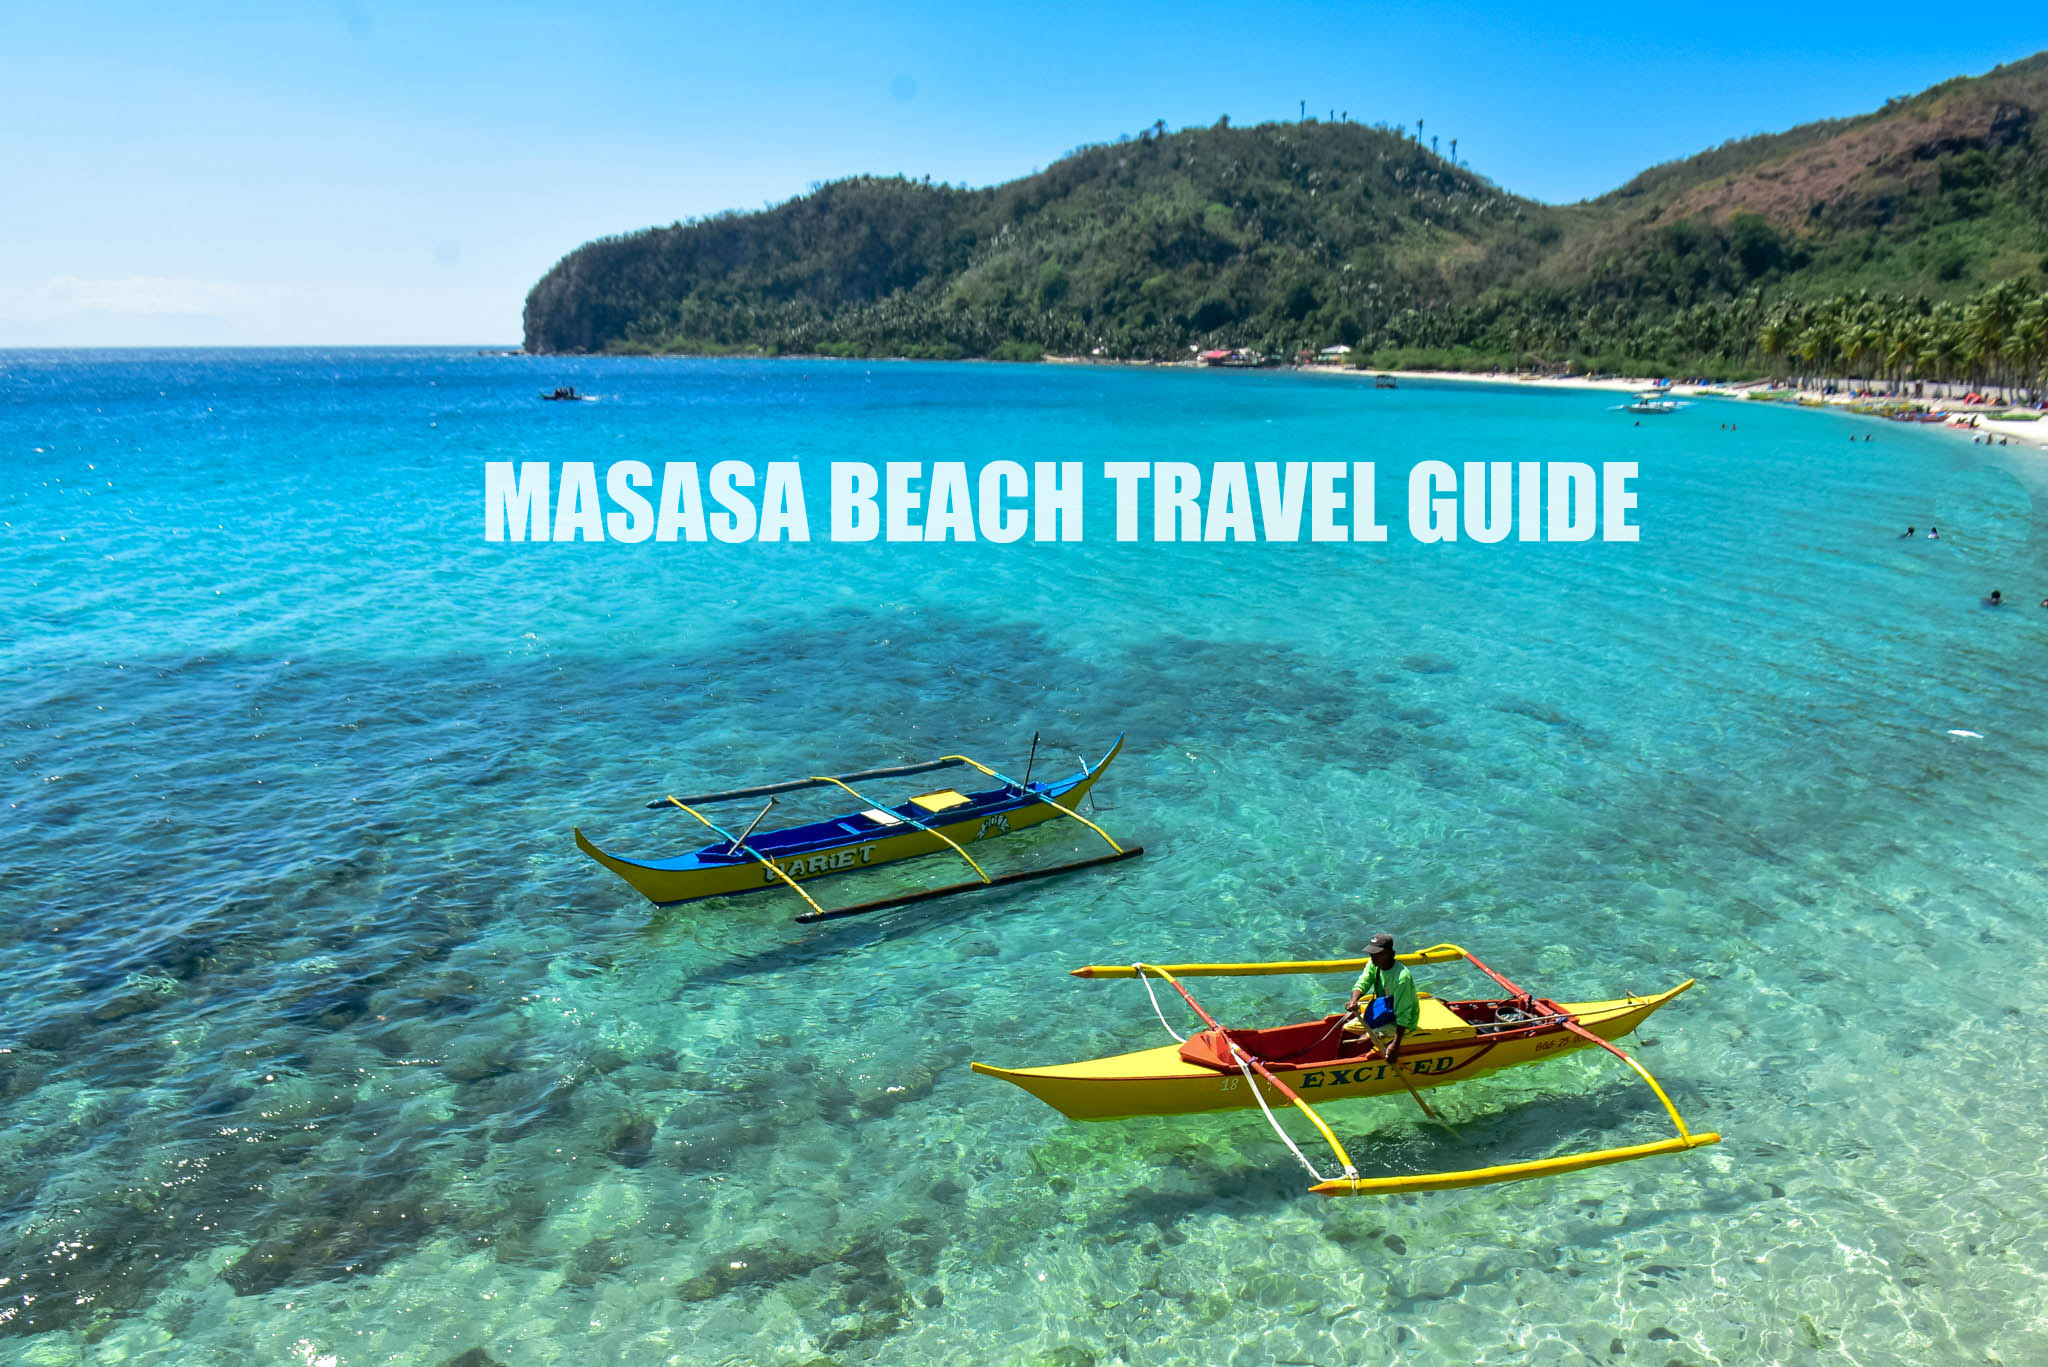 MASASA BEACH TRAVEL GUIDE 2018 (Budget + Itinerary)